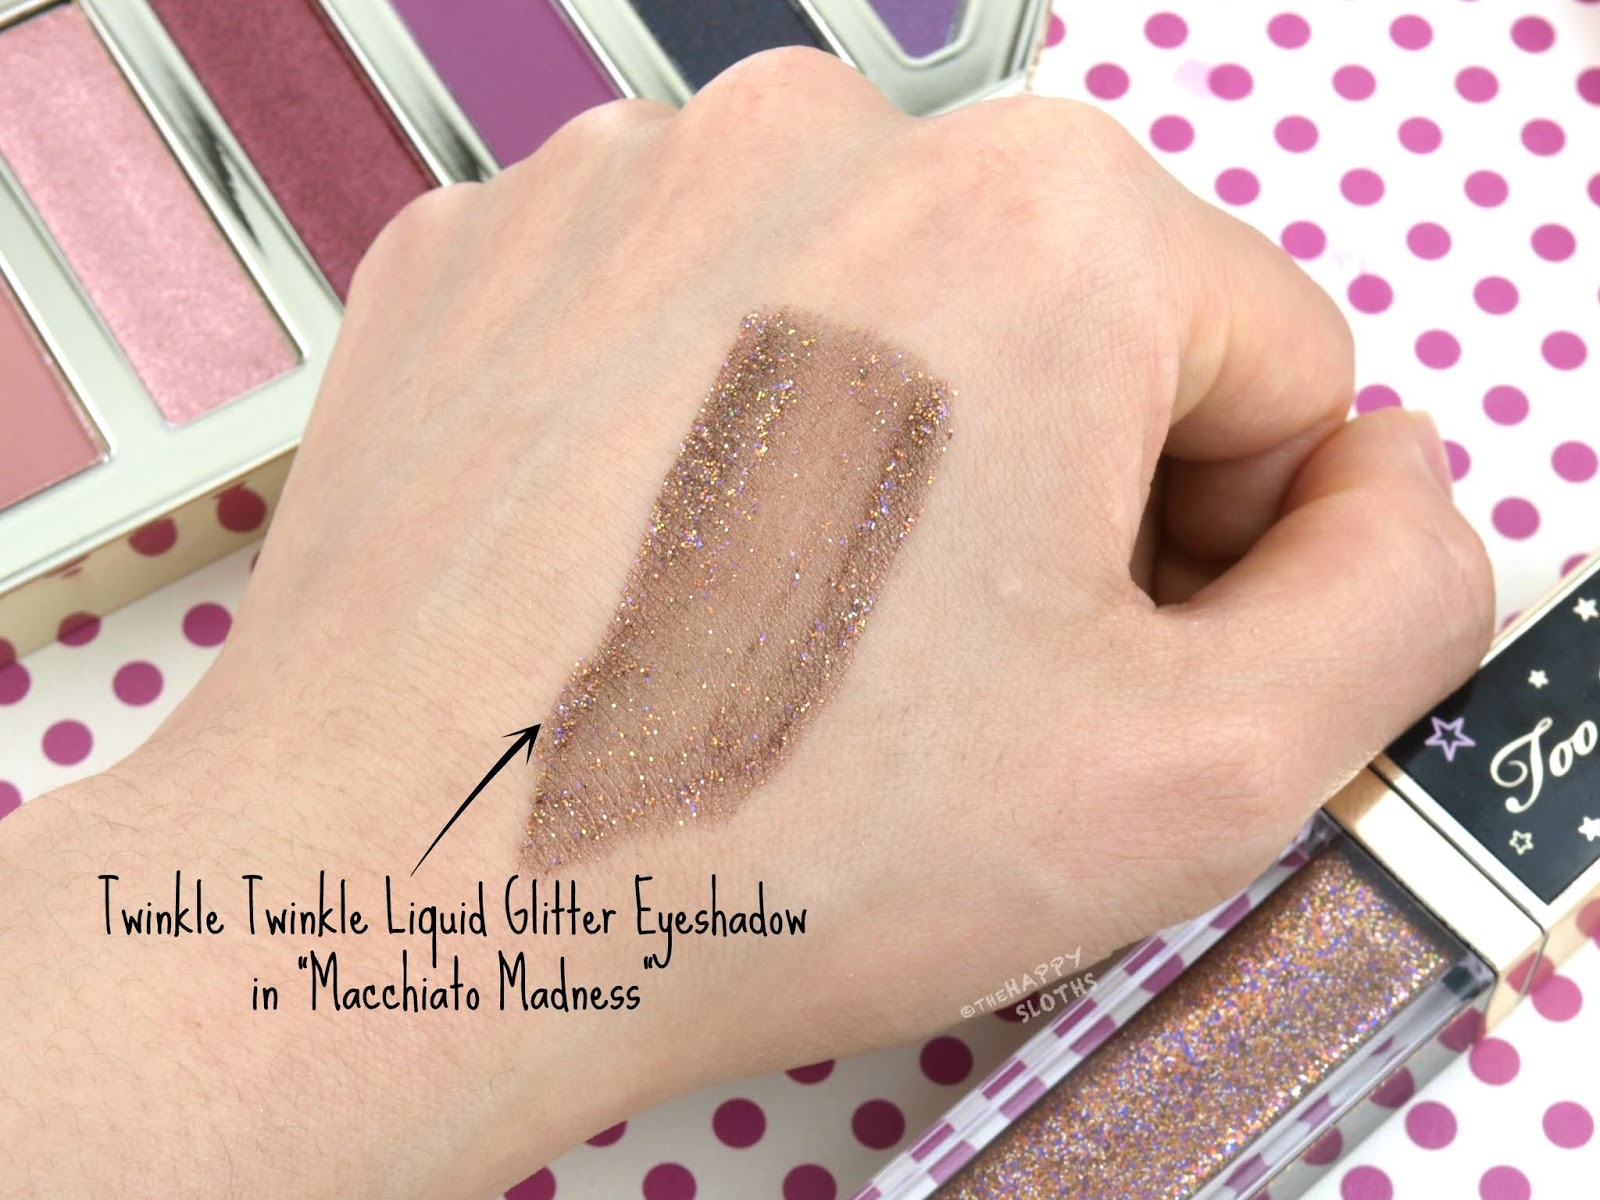 Too Faced Tutti Frutti Collection | Twinkle Twinkle Liquid Glitter Eyeshadow: Review and Swatches